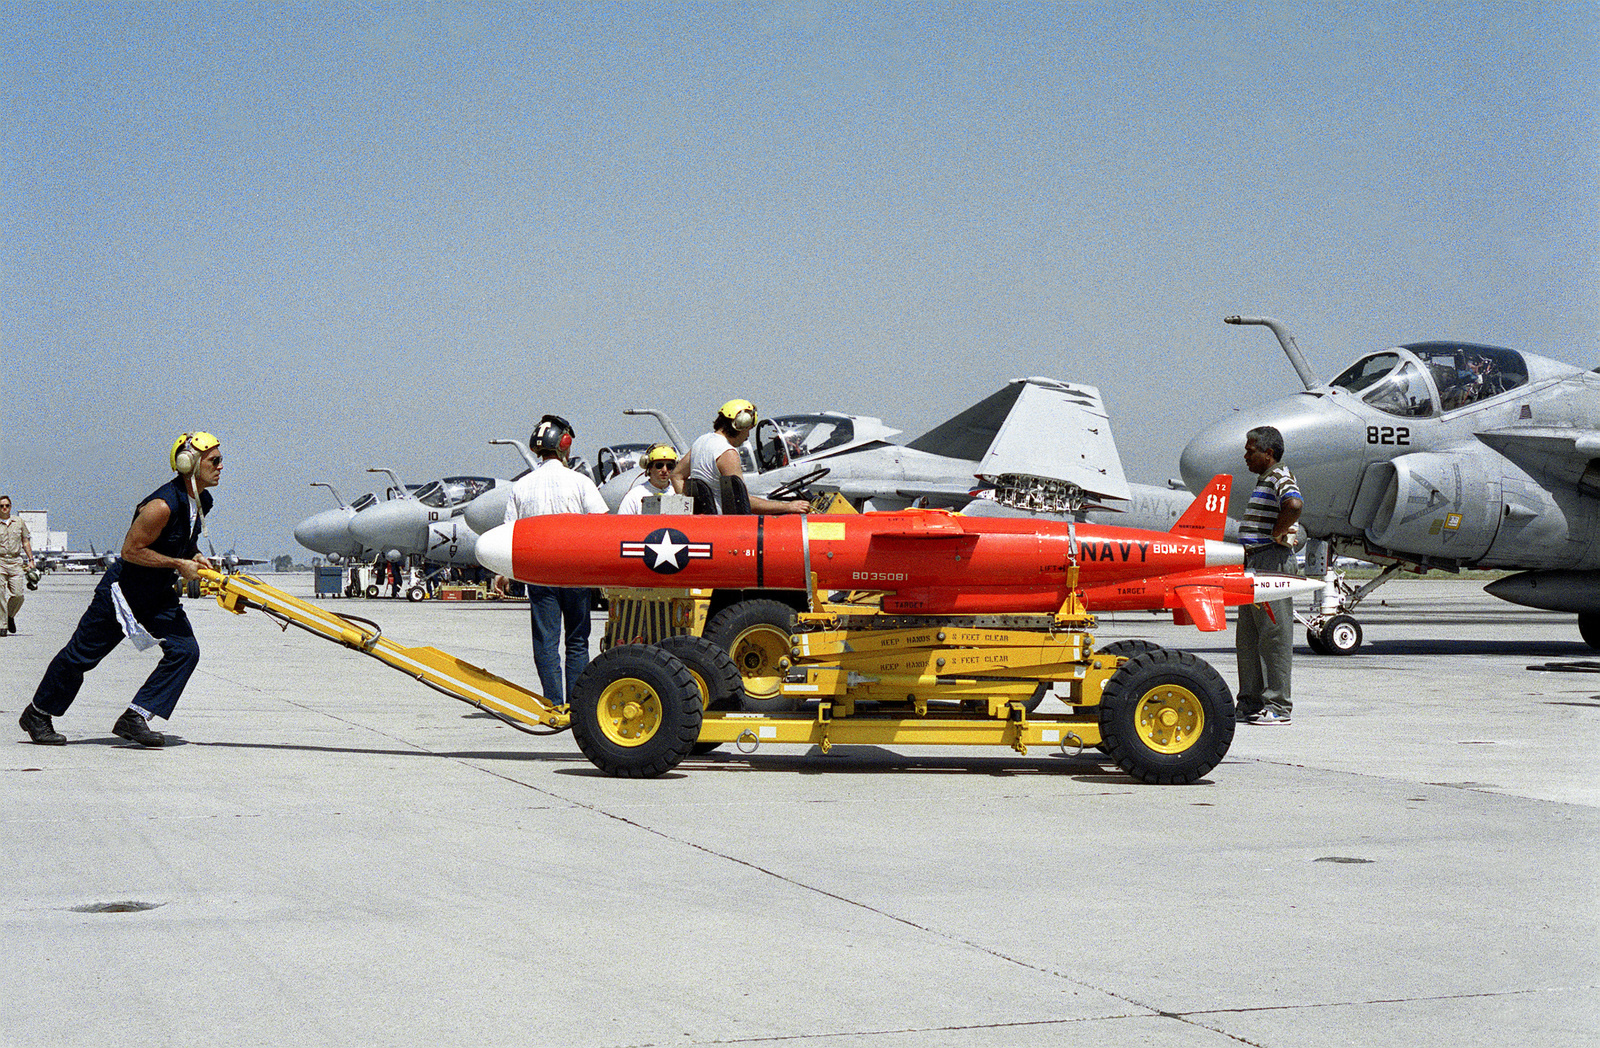 A weapons loader is used to move a BQM-74E target drone across the flight line during operational test and evaluation exercises conducted by the Missile Targets Division of the Naval Air Warfare Center Weapons Division. A-6E Intruder aircraft are in the background